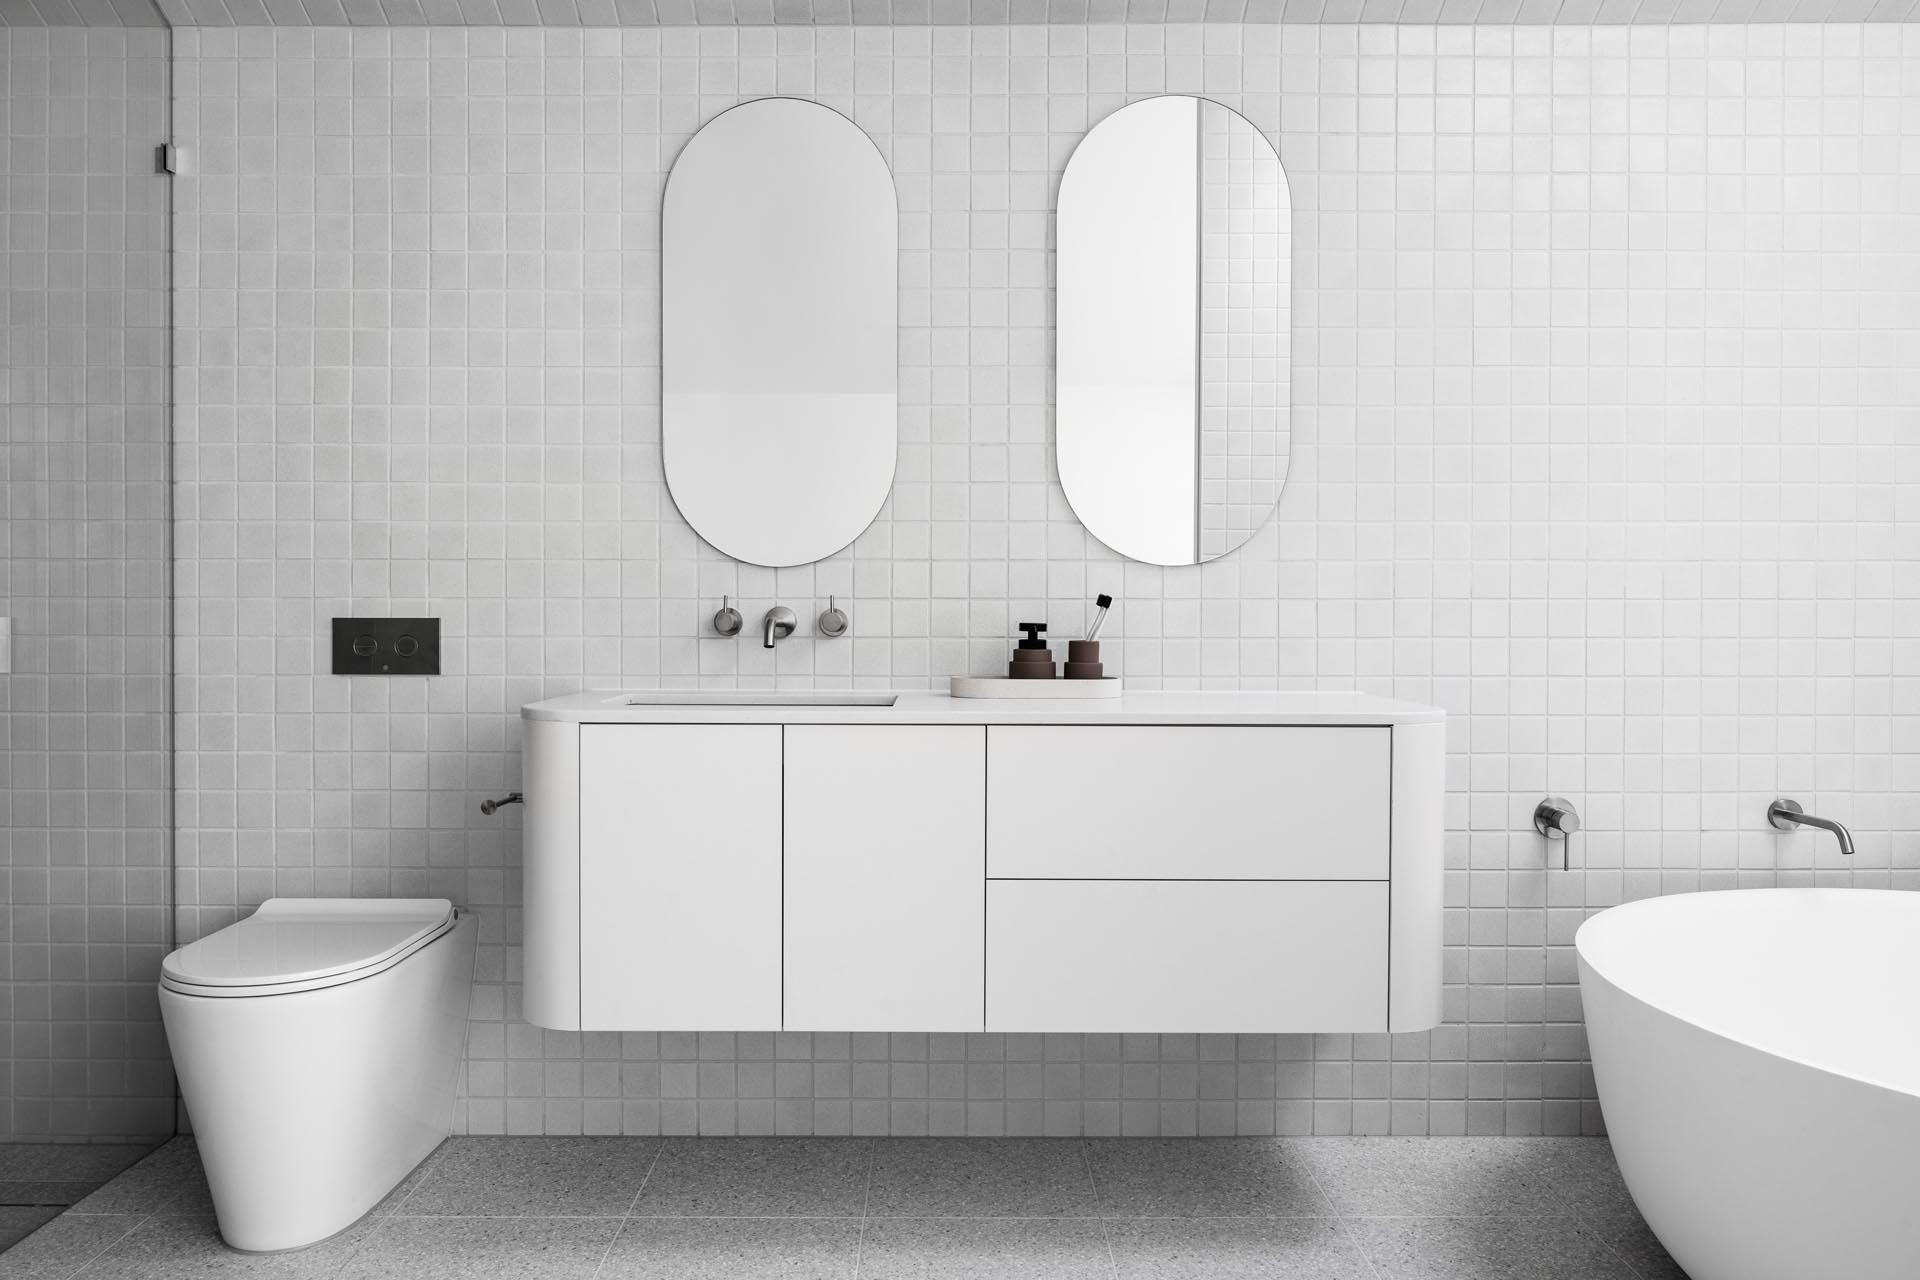 In this modern bathroom, square gray tiles cover the walls and floor, while pill-shaped mirrors hang above the floating white vanity with curved corners. One end of the bathroom is dedicated to the shower, while the other has a round freestanding bathtub located beneath a skylight.